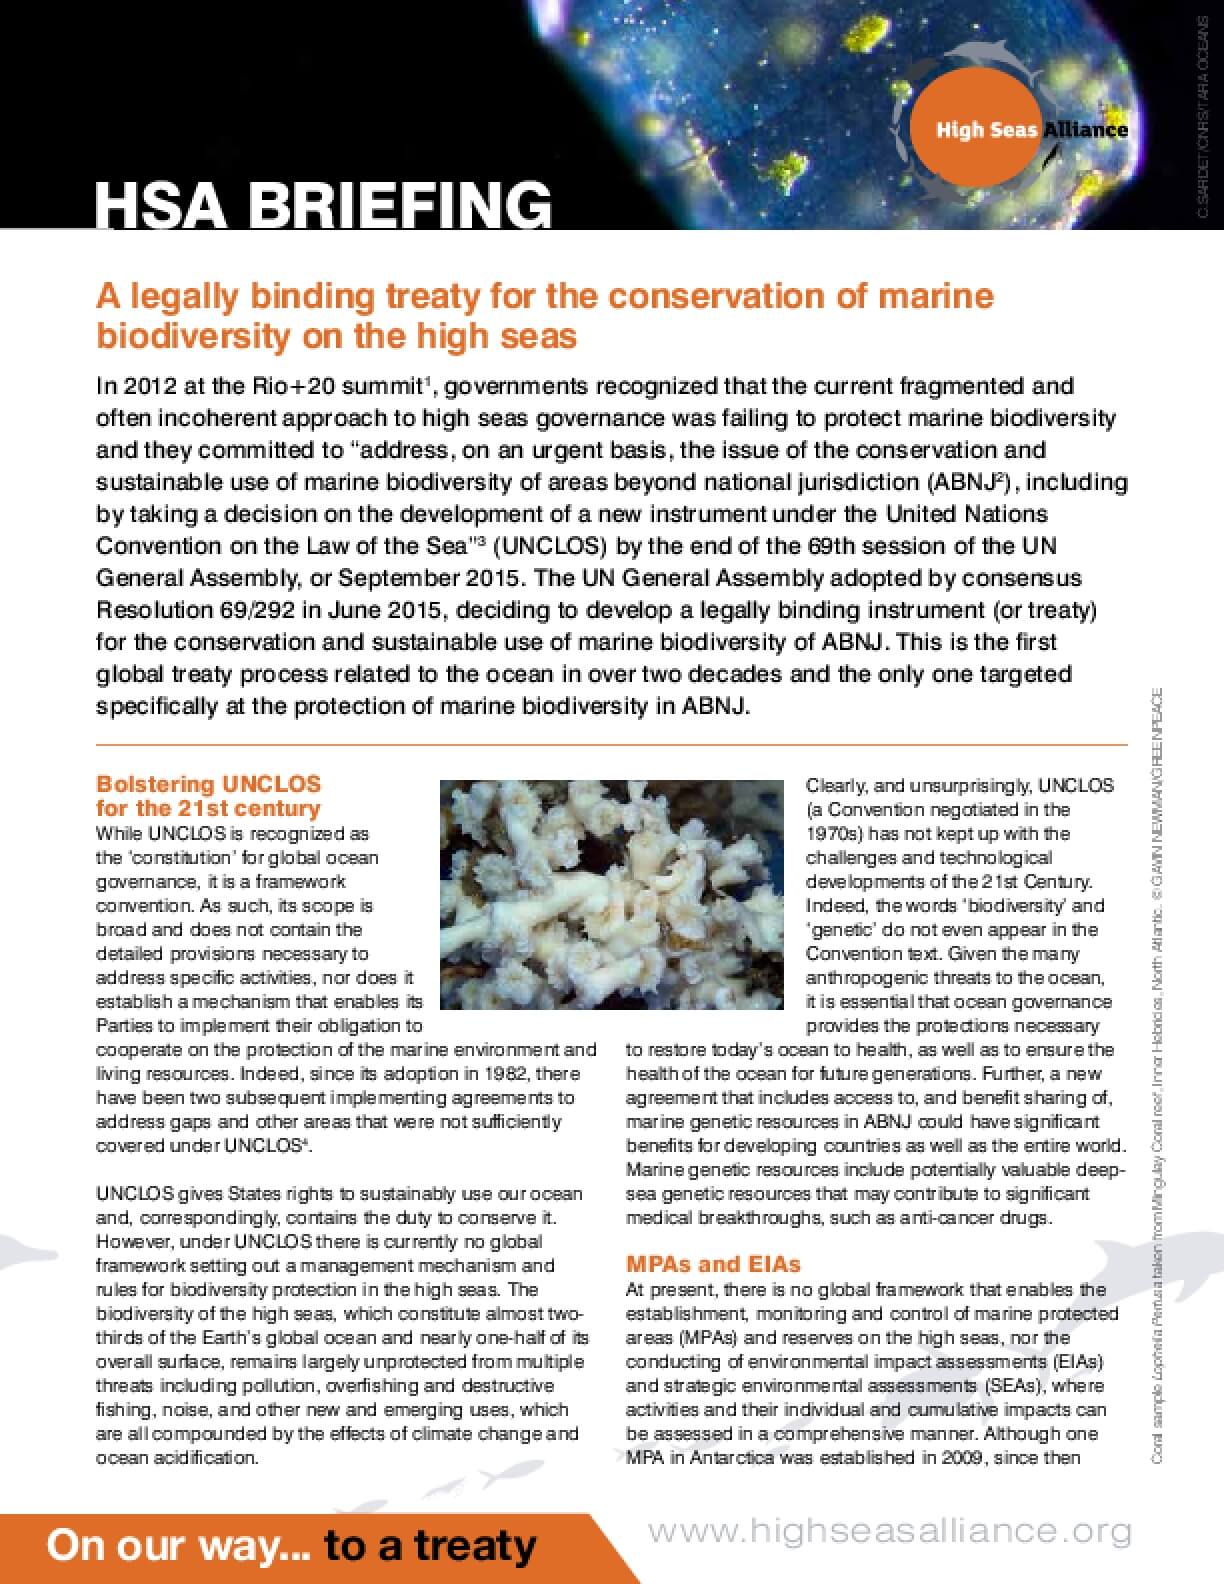 HSA Briefing 2:  The Need for a New Implementing Agreement Under UNCLOS on Marine Biodiversity of the High Seas